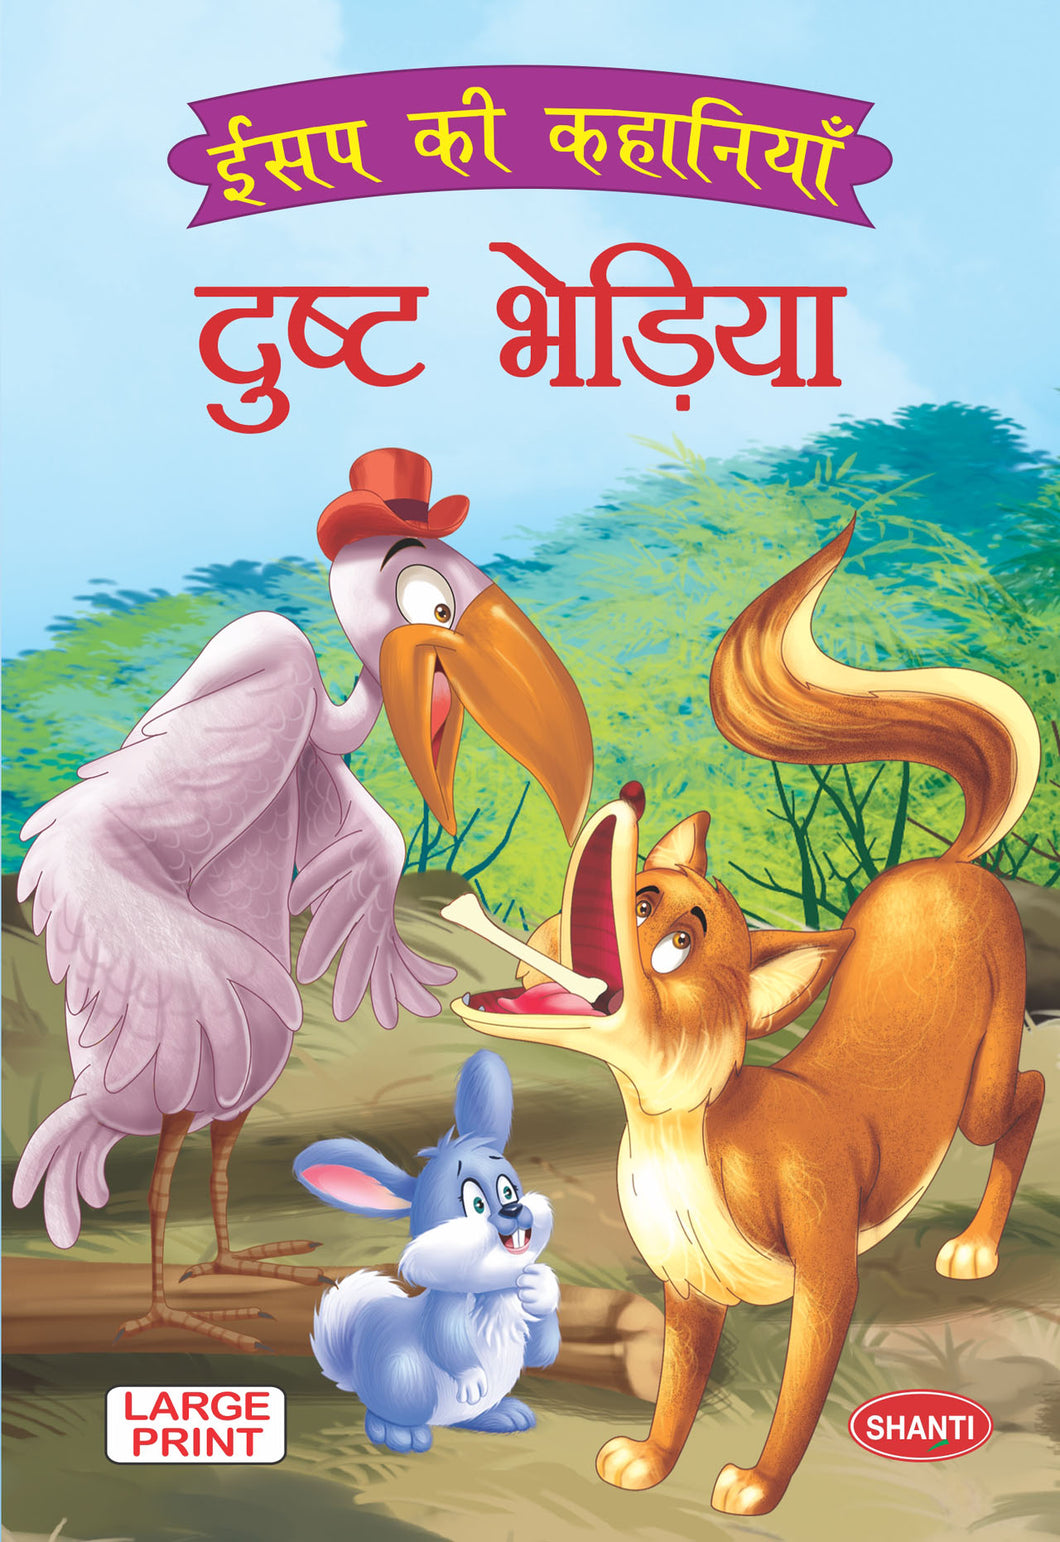 Aesop Fables for children-Aesop Fables (Hindi) - Dushta Bhediya